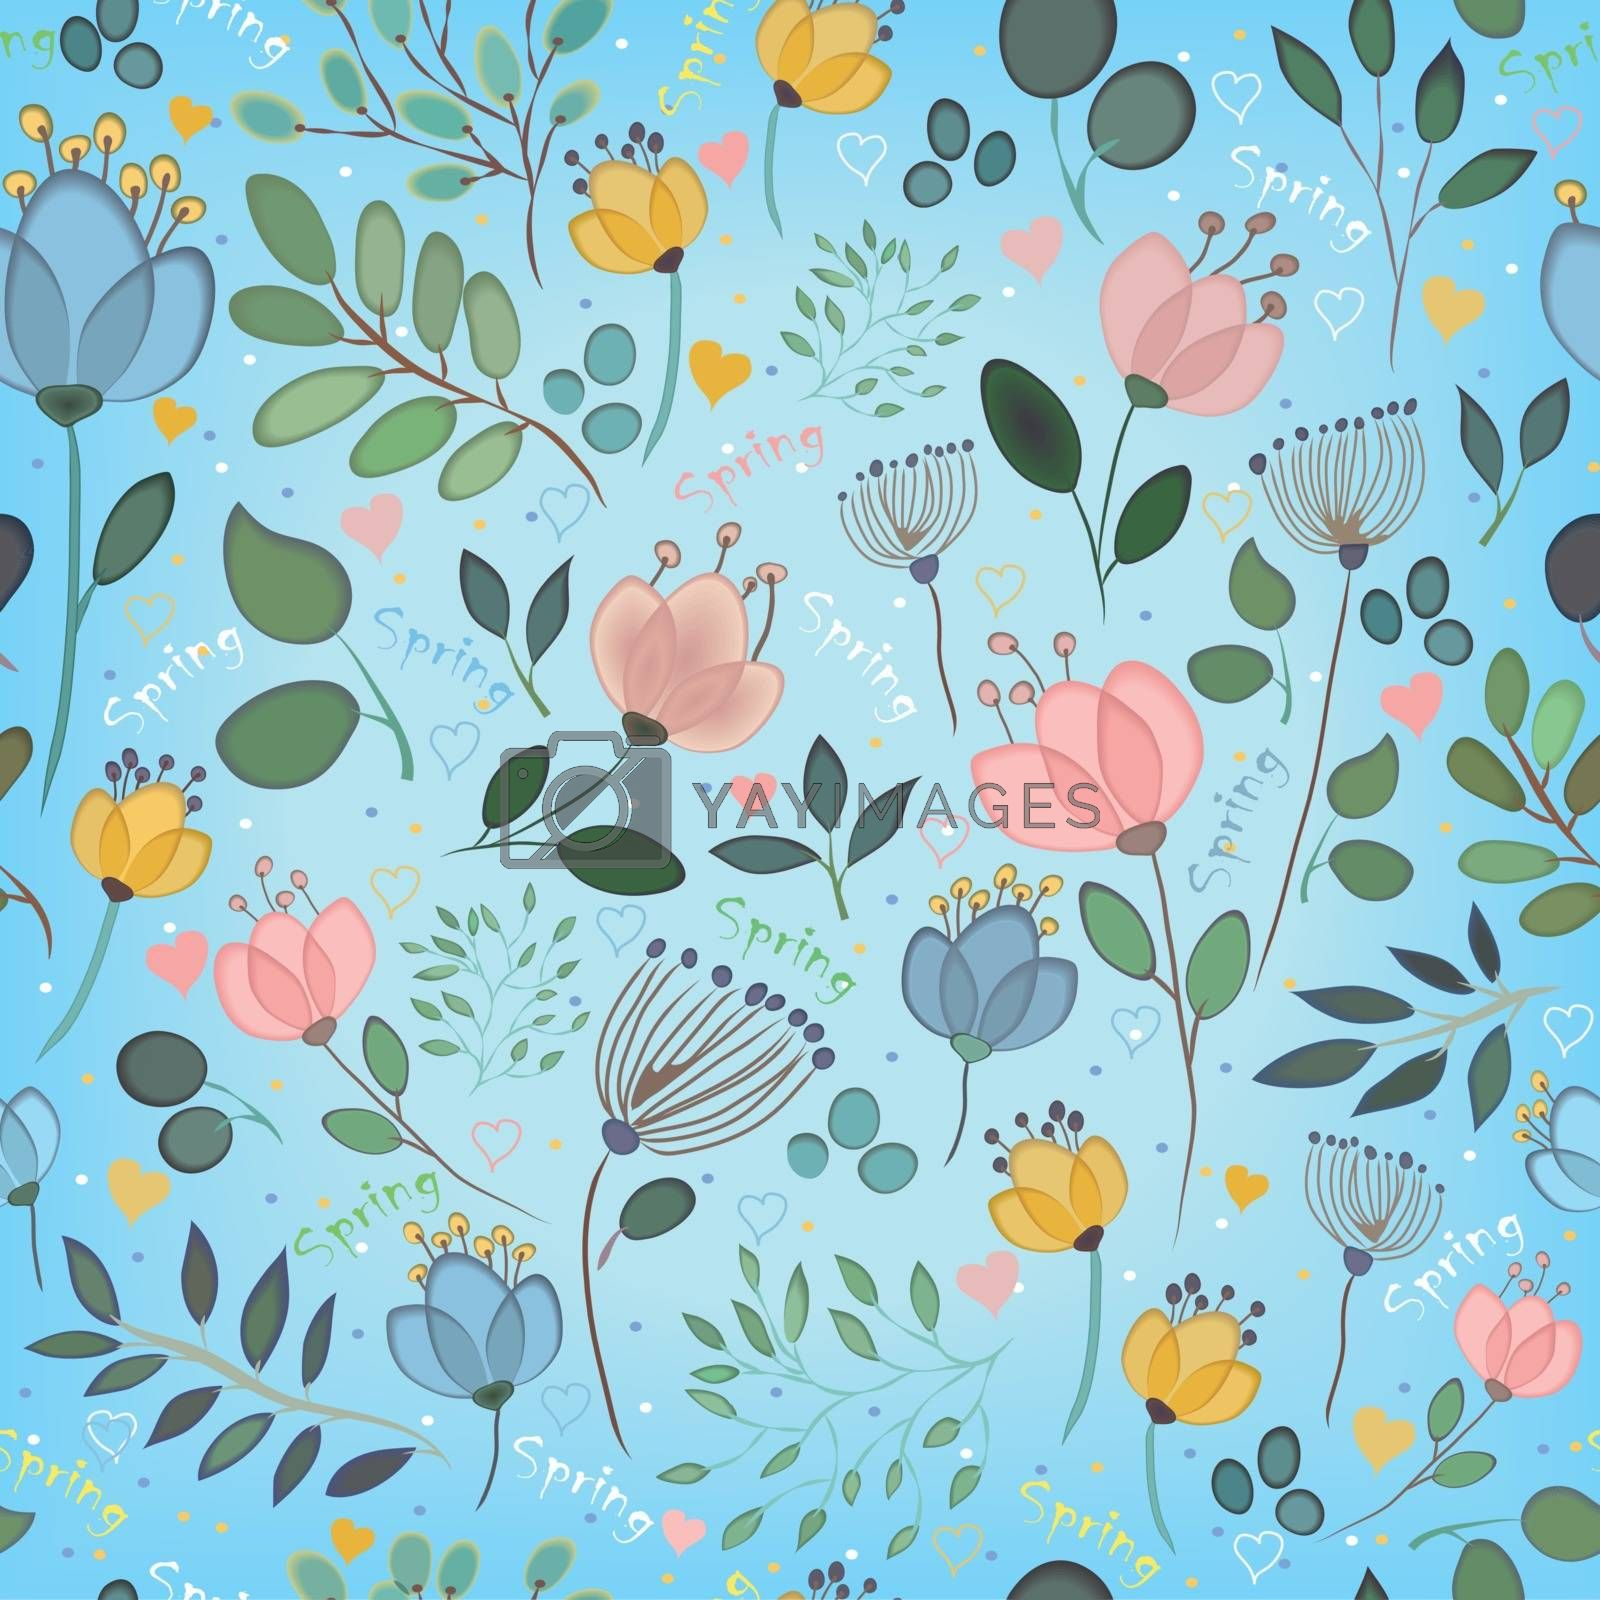 Royalty free image of Vector seamless pattern. Watercolor flowers  by prolegowoman